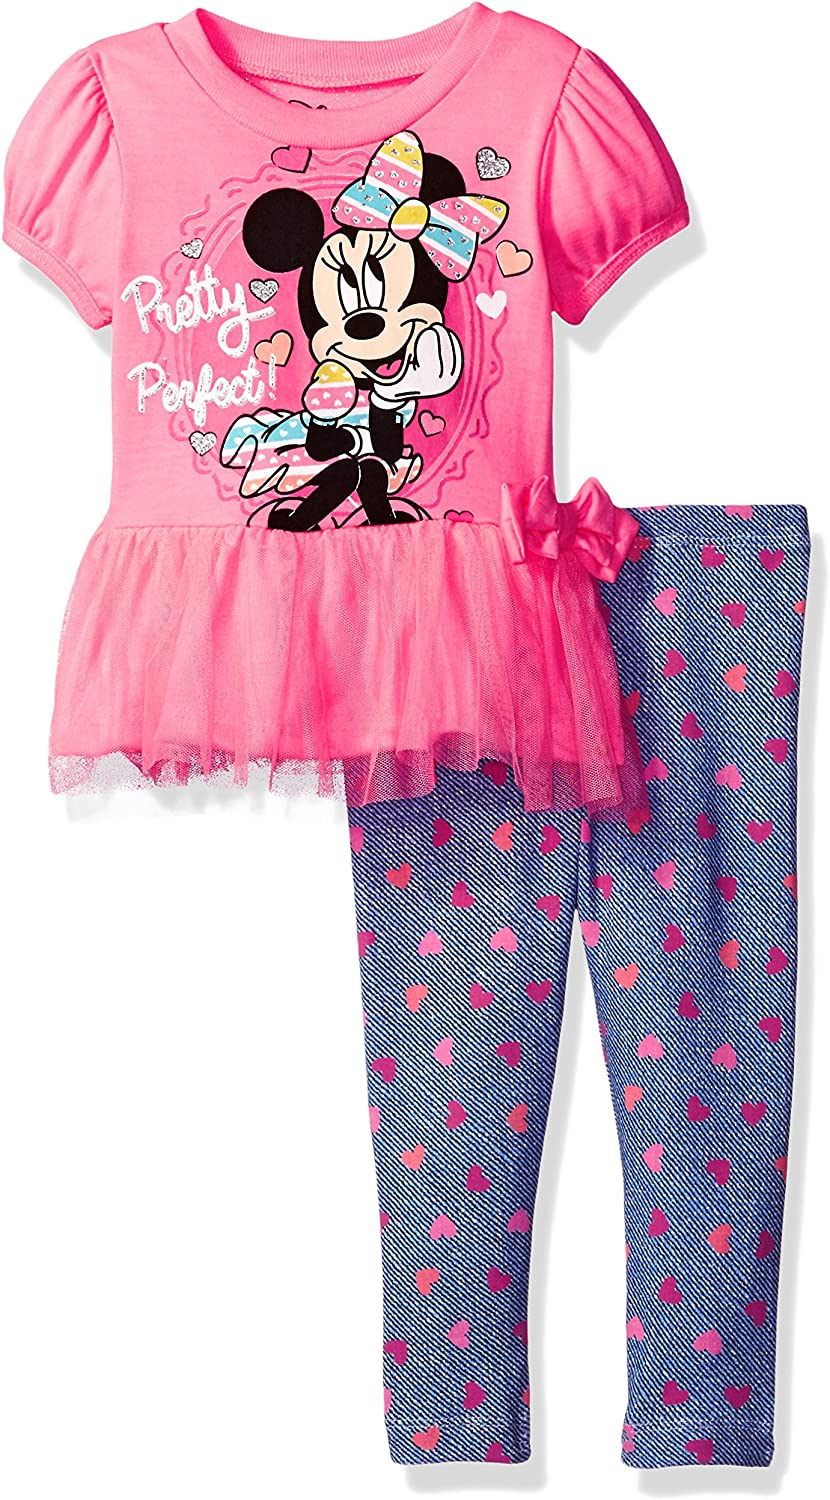 Minnie Mouse Fashion Top for Toddler Girls